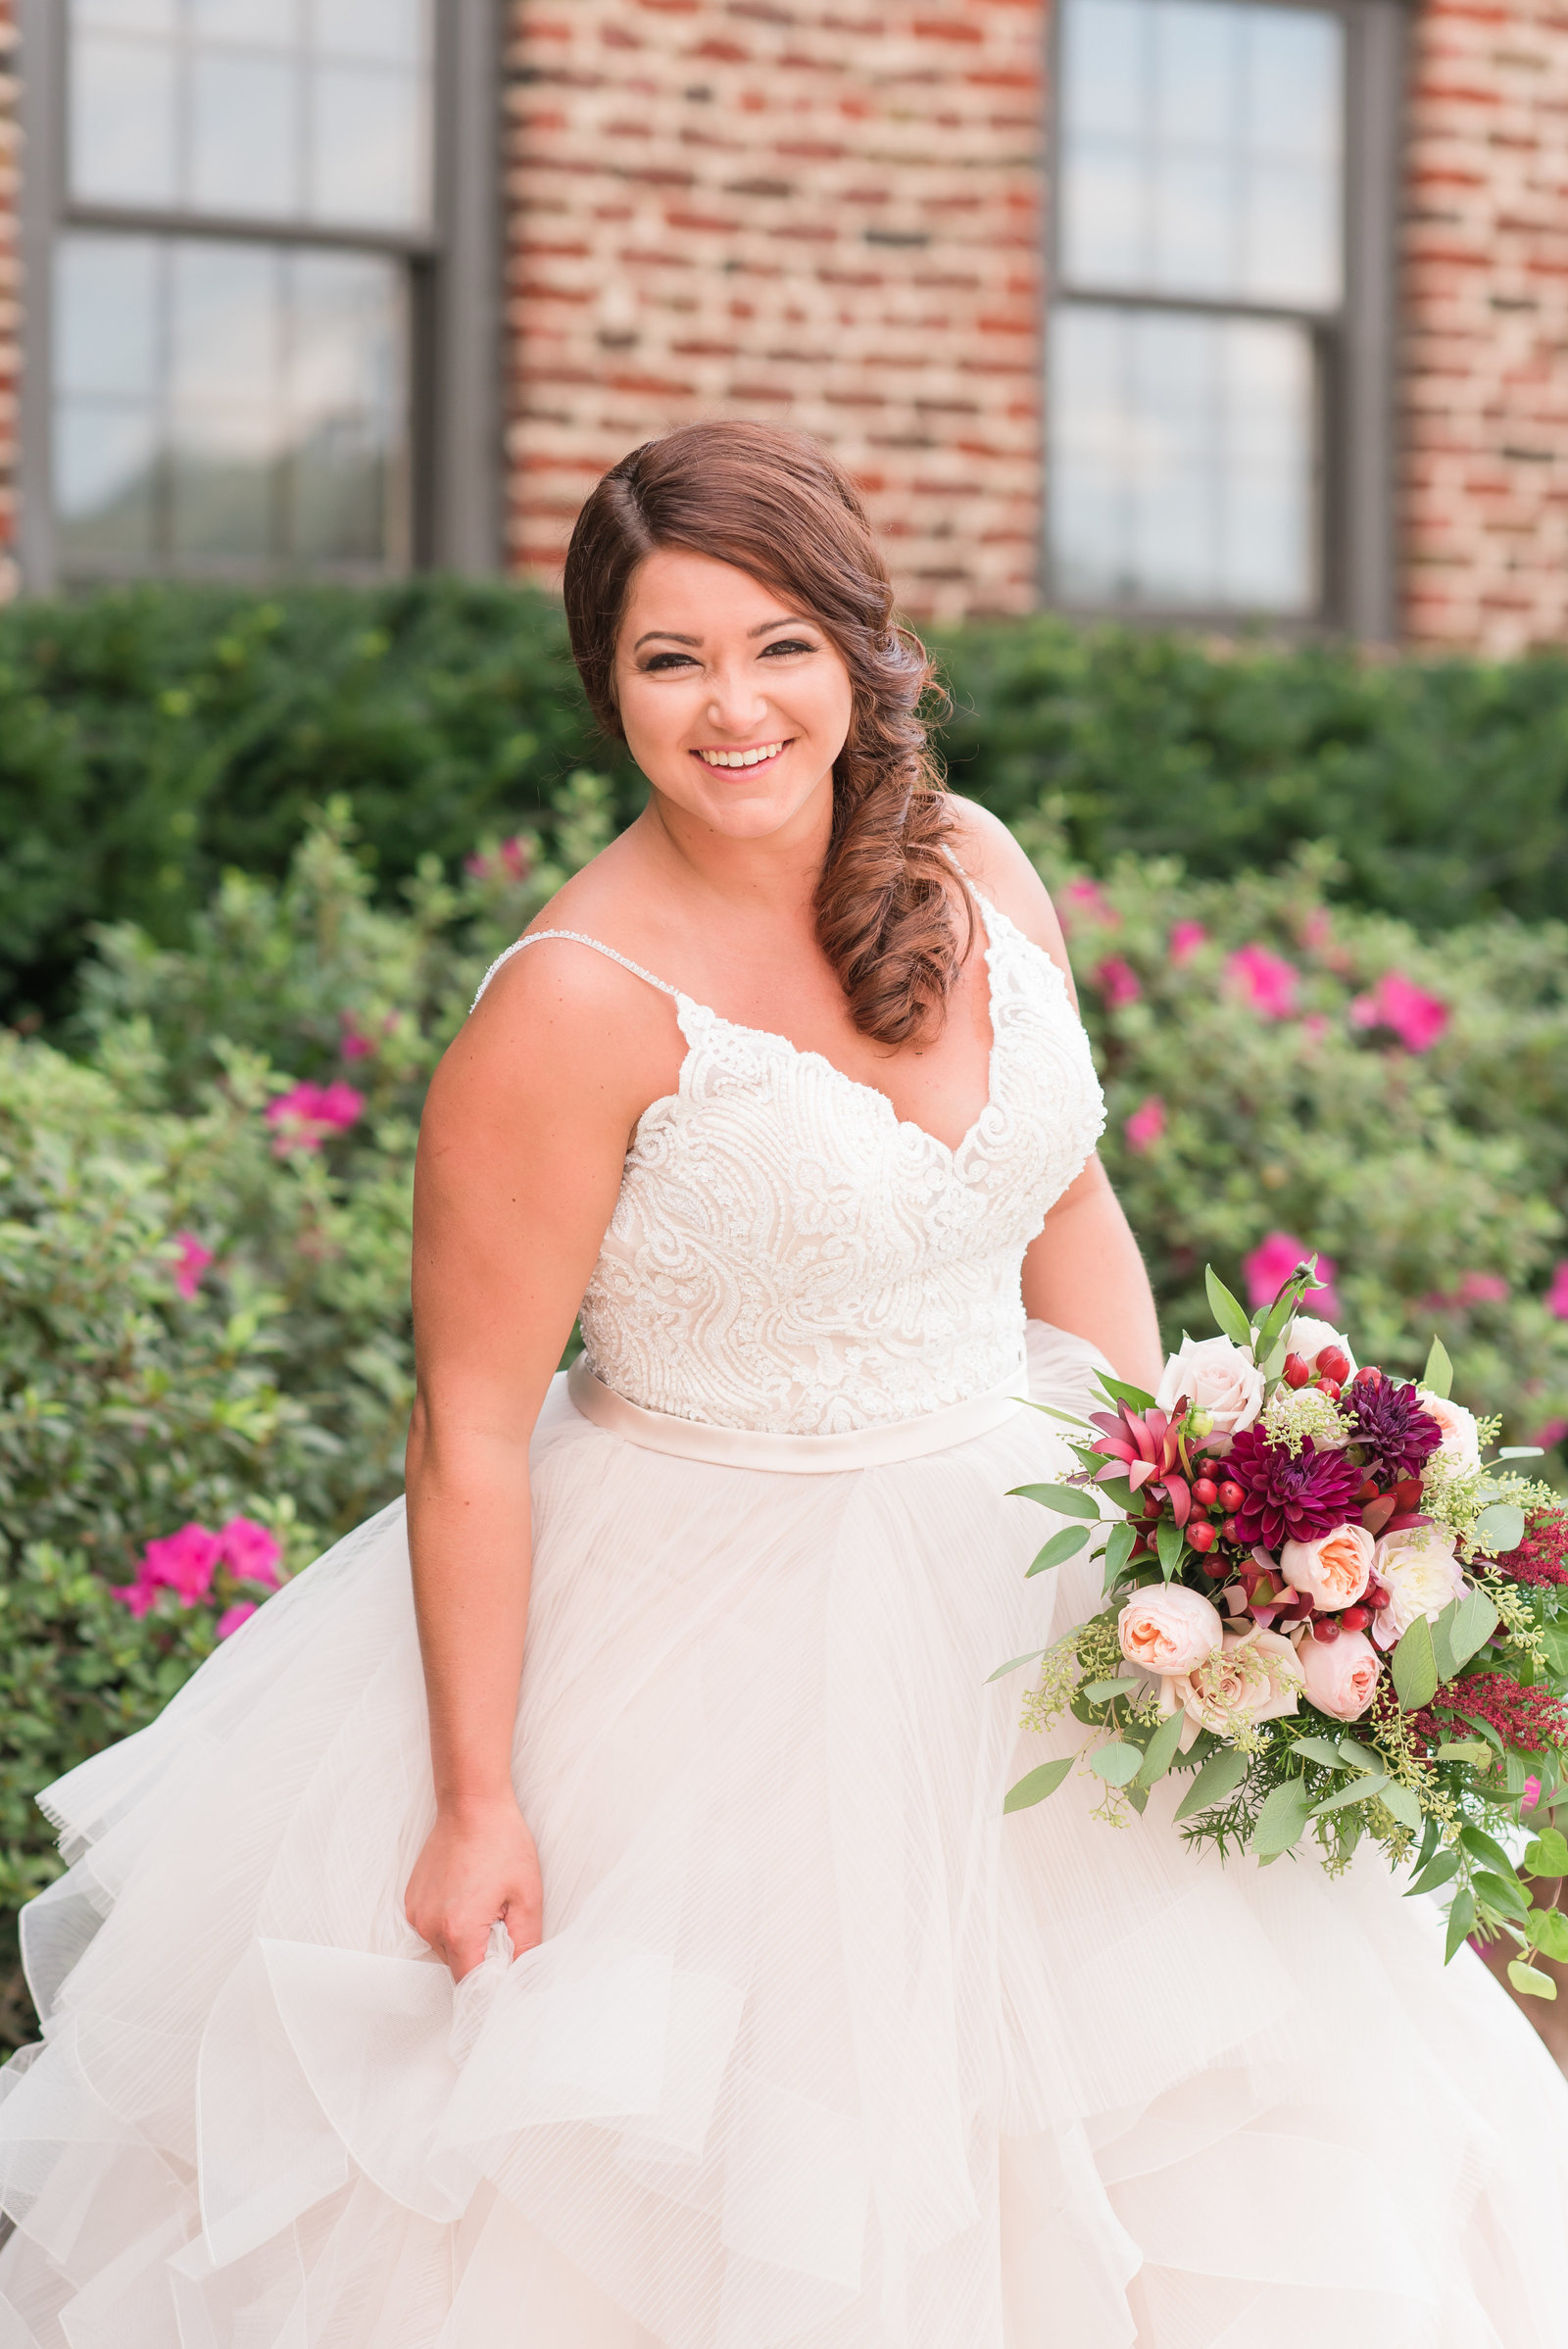 a bride in a champagne  colored dress holding a  pink and red bridal bouquet standing in front of purple flowers smiling at the camera at Sedgefield Country Club